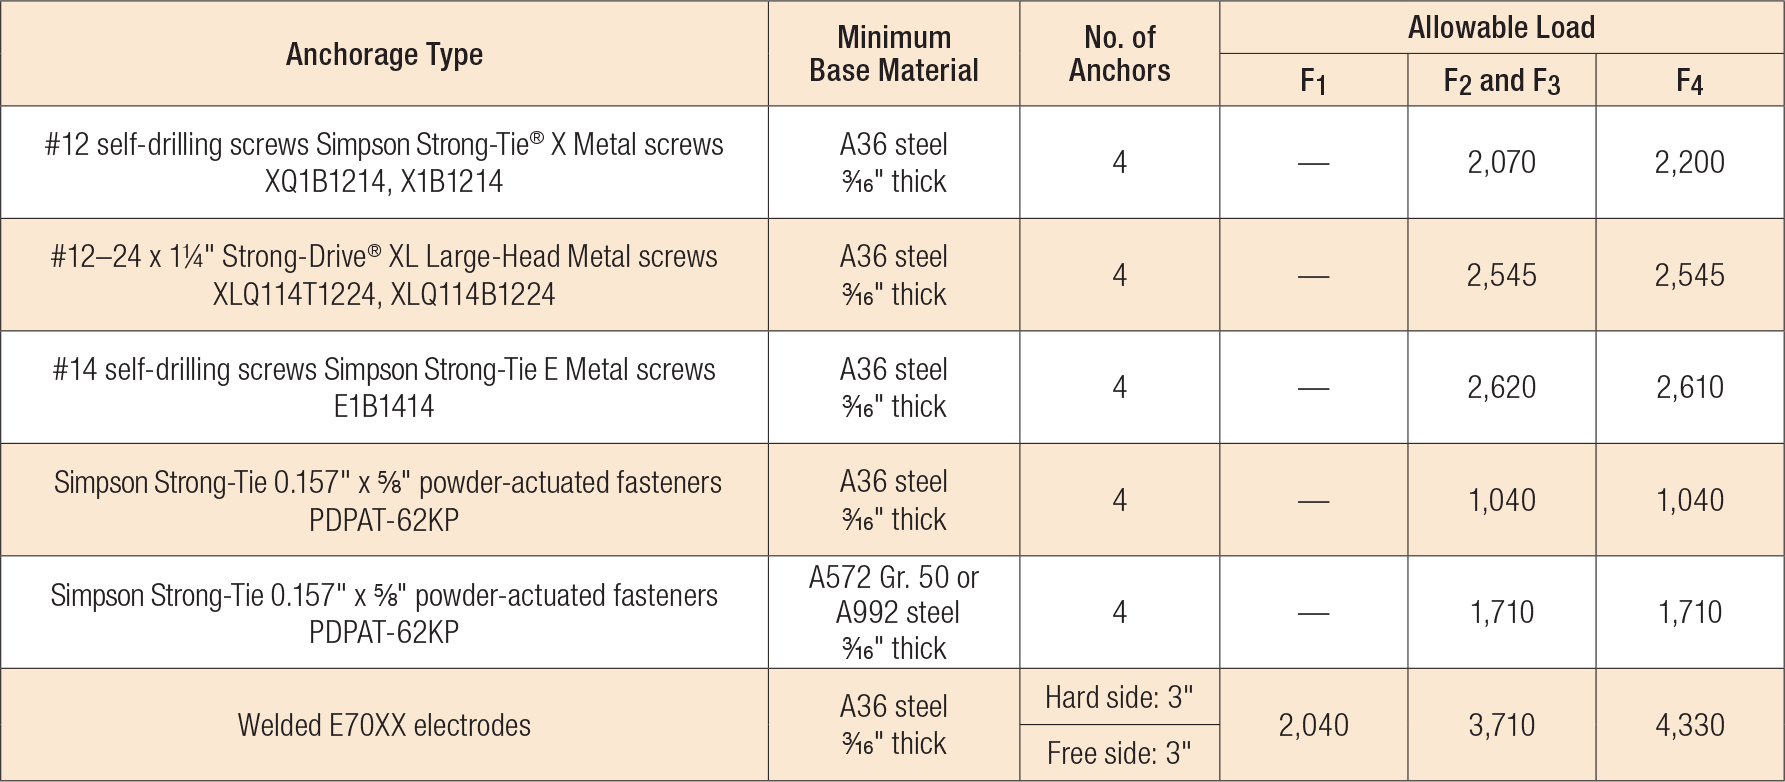 Load Table - FC Allowable Anchorage Loads to Steel (lb.)